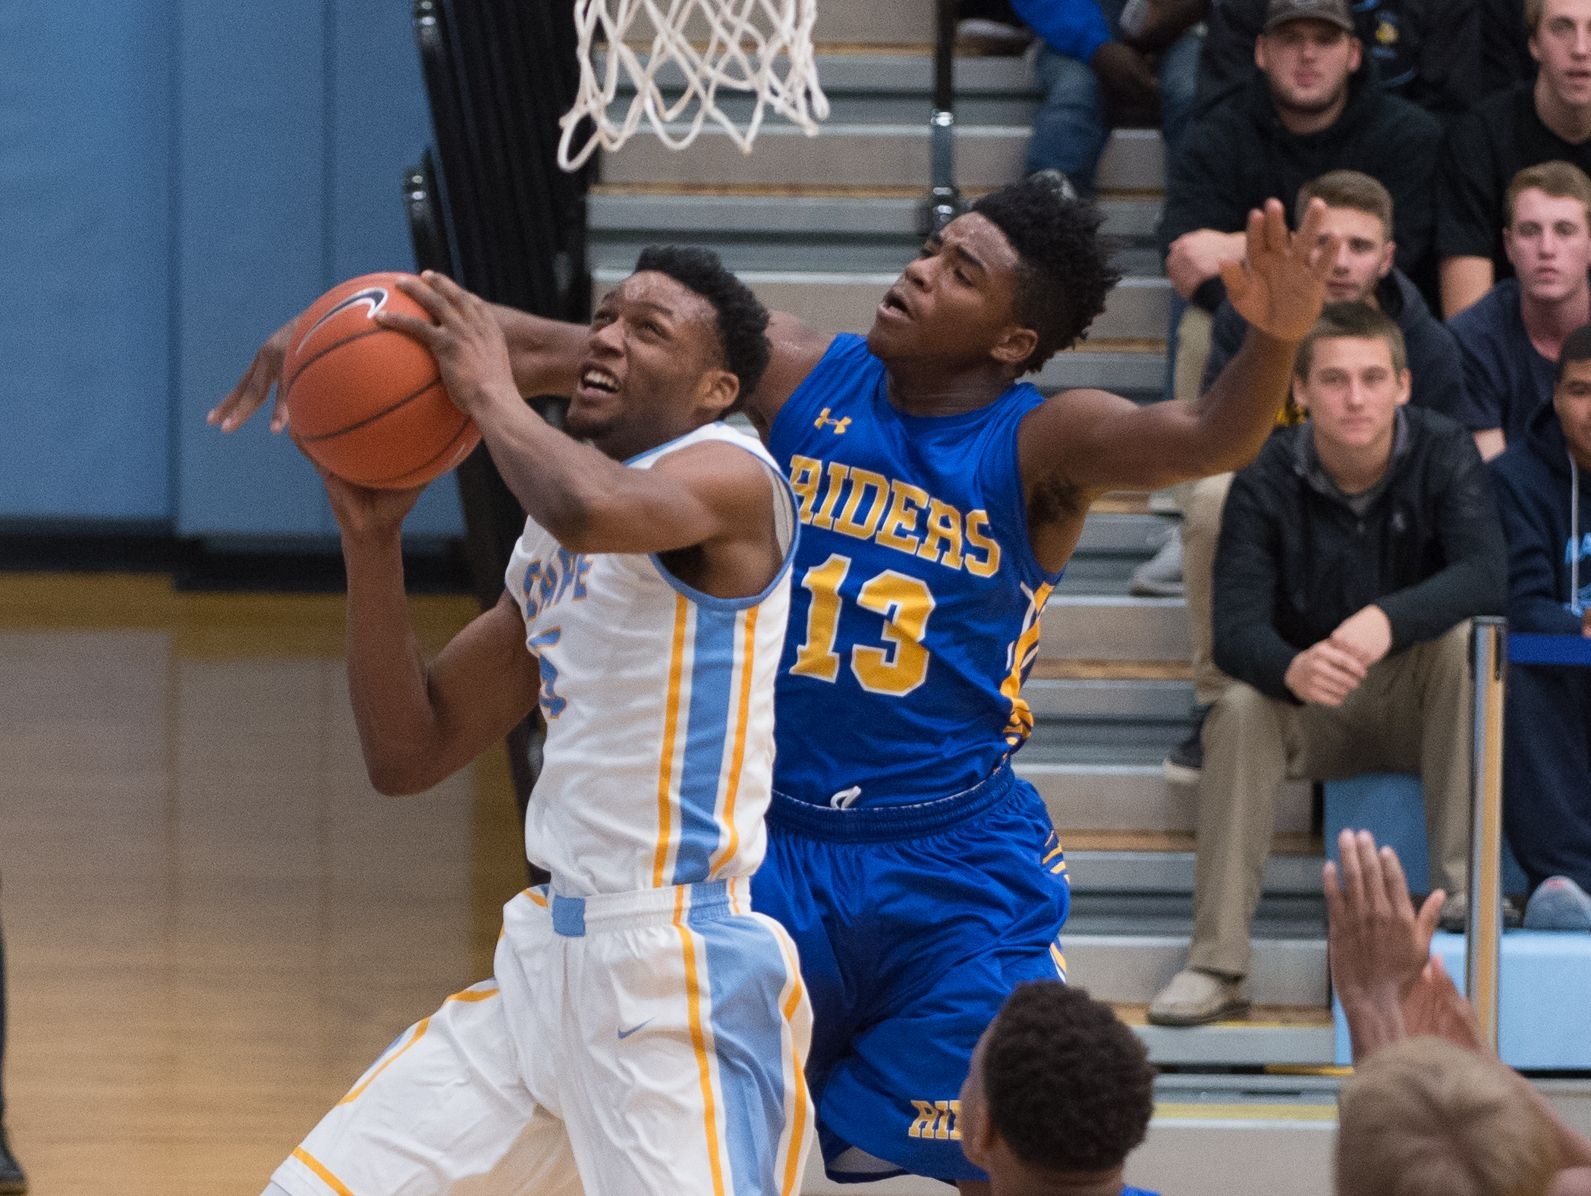 Caesar Rodney's Kairi Buie (13) reaches over the shoulder of Cape Henlopen's Randy Rickards (5) as he goes up for a basket during their game at Cape Henlopen High School.